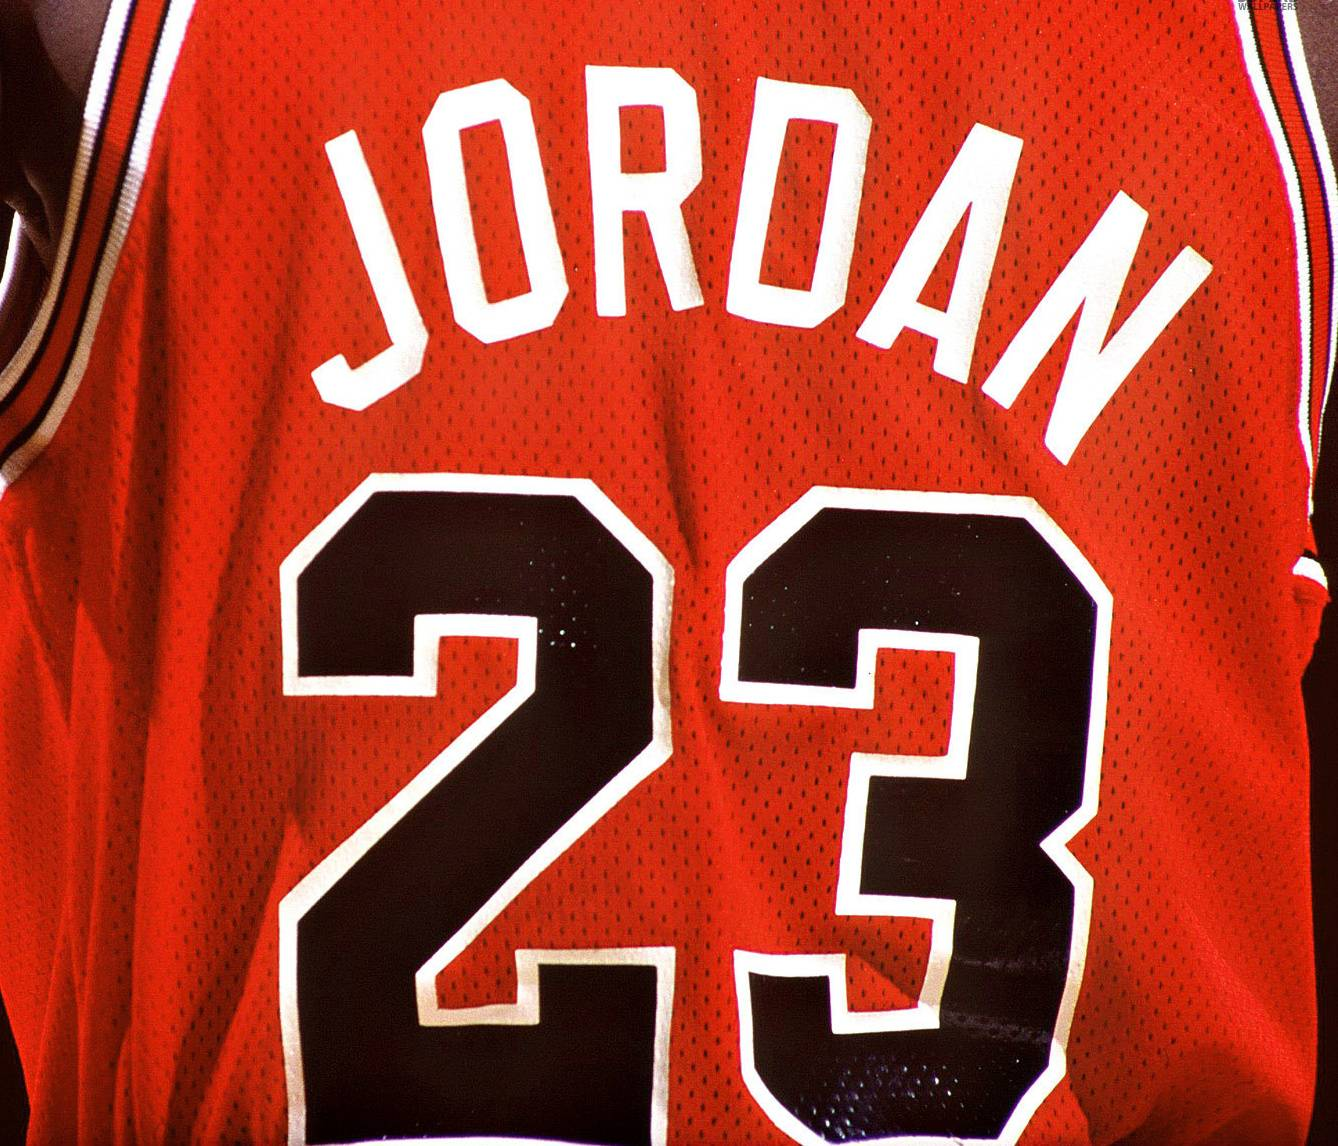 Jordan 23 Wallpaper By Christiancama2 Da Free On Zedge